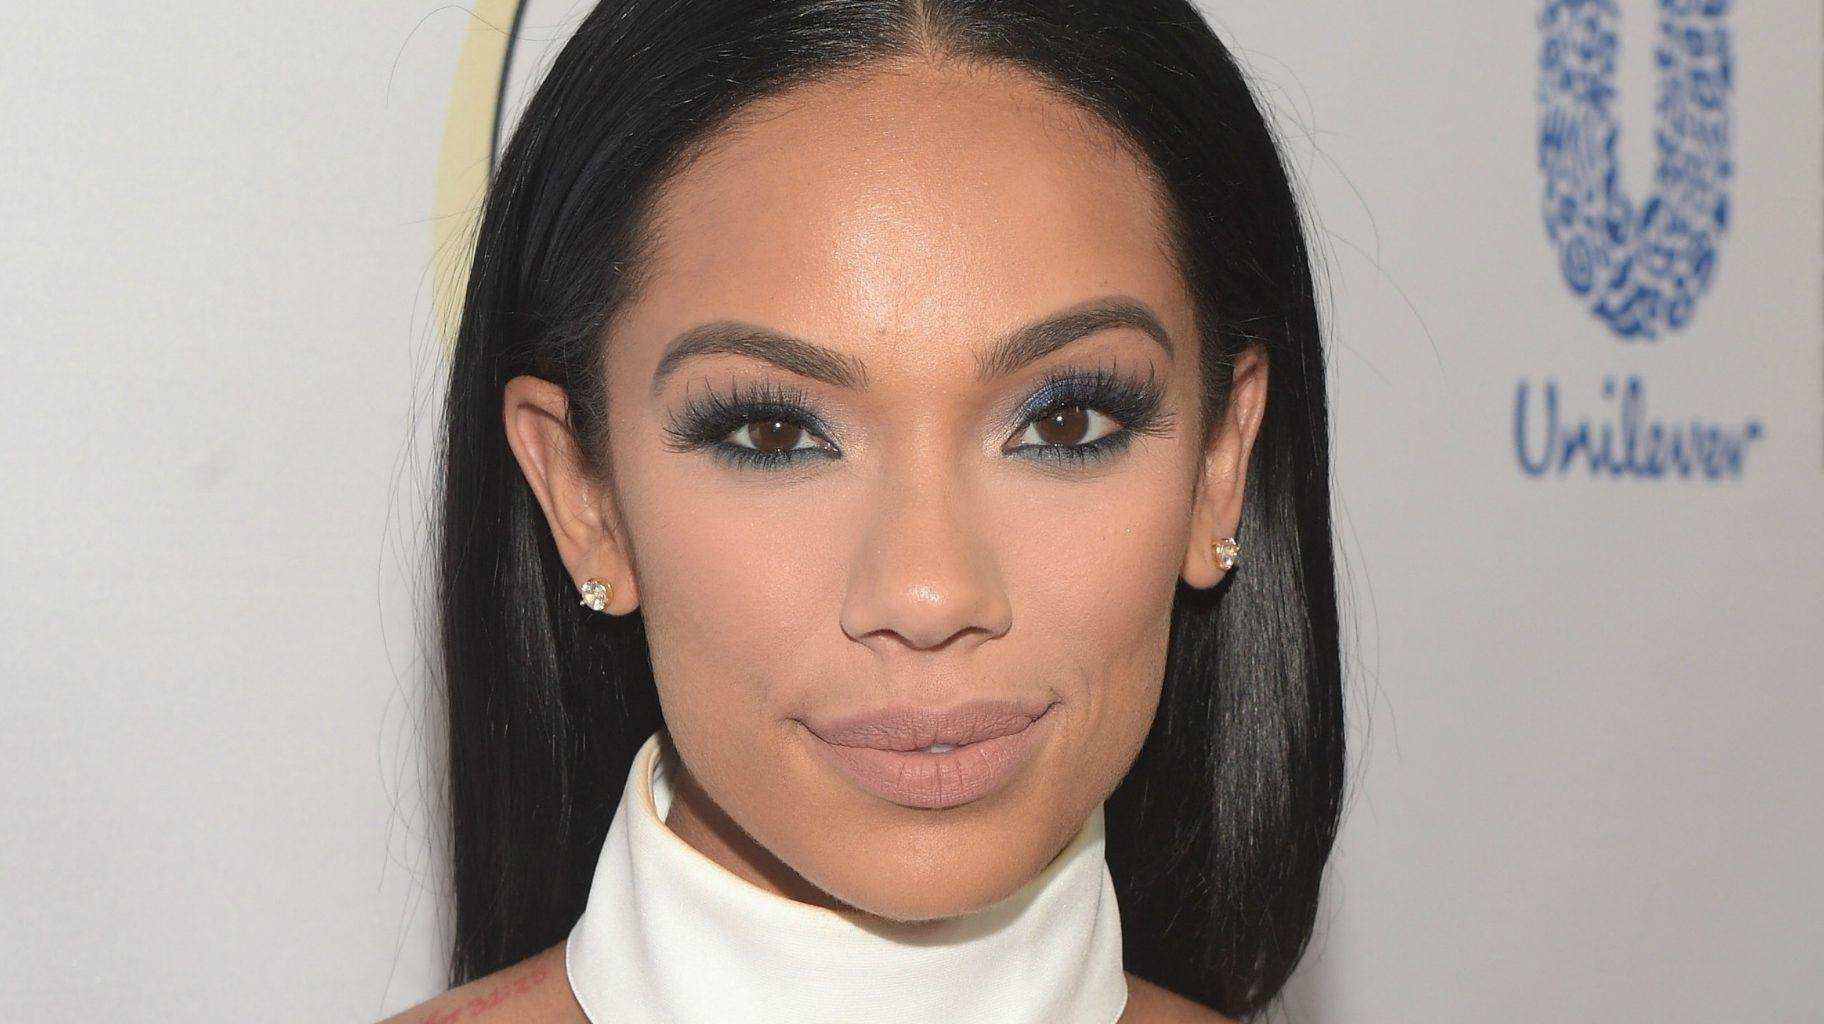 Erica Mena Teases A Potential New Pregnancy With This Throwback Photo